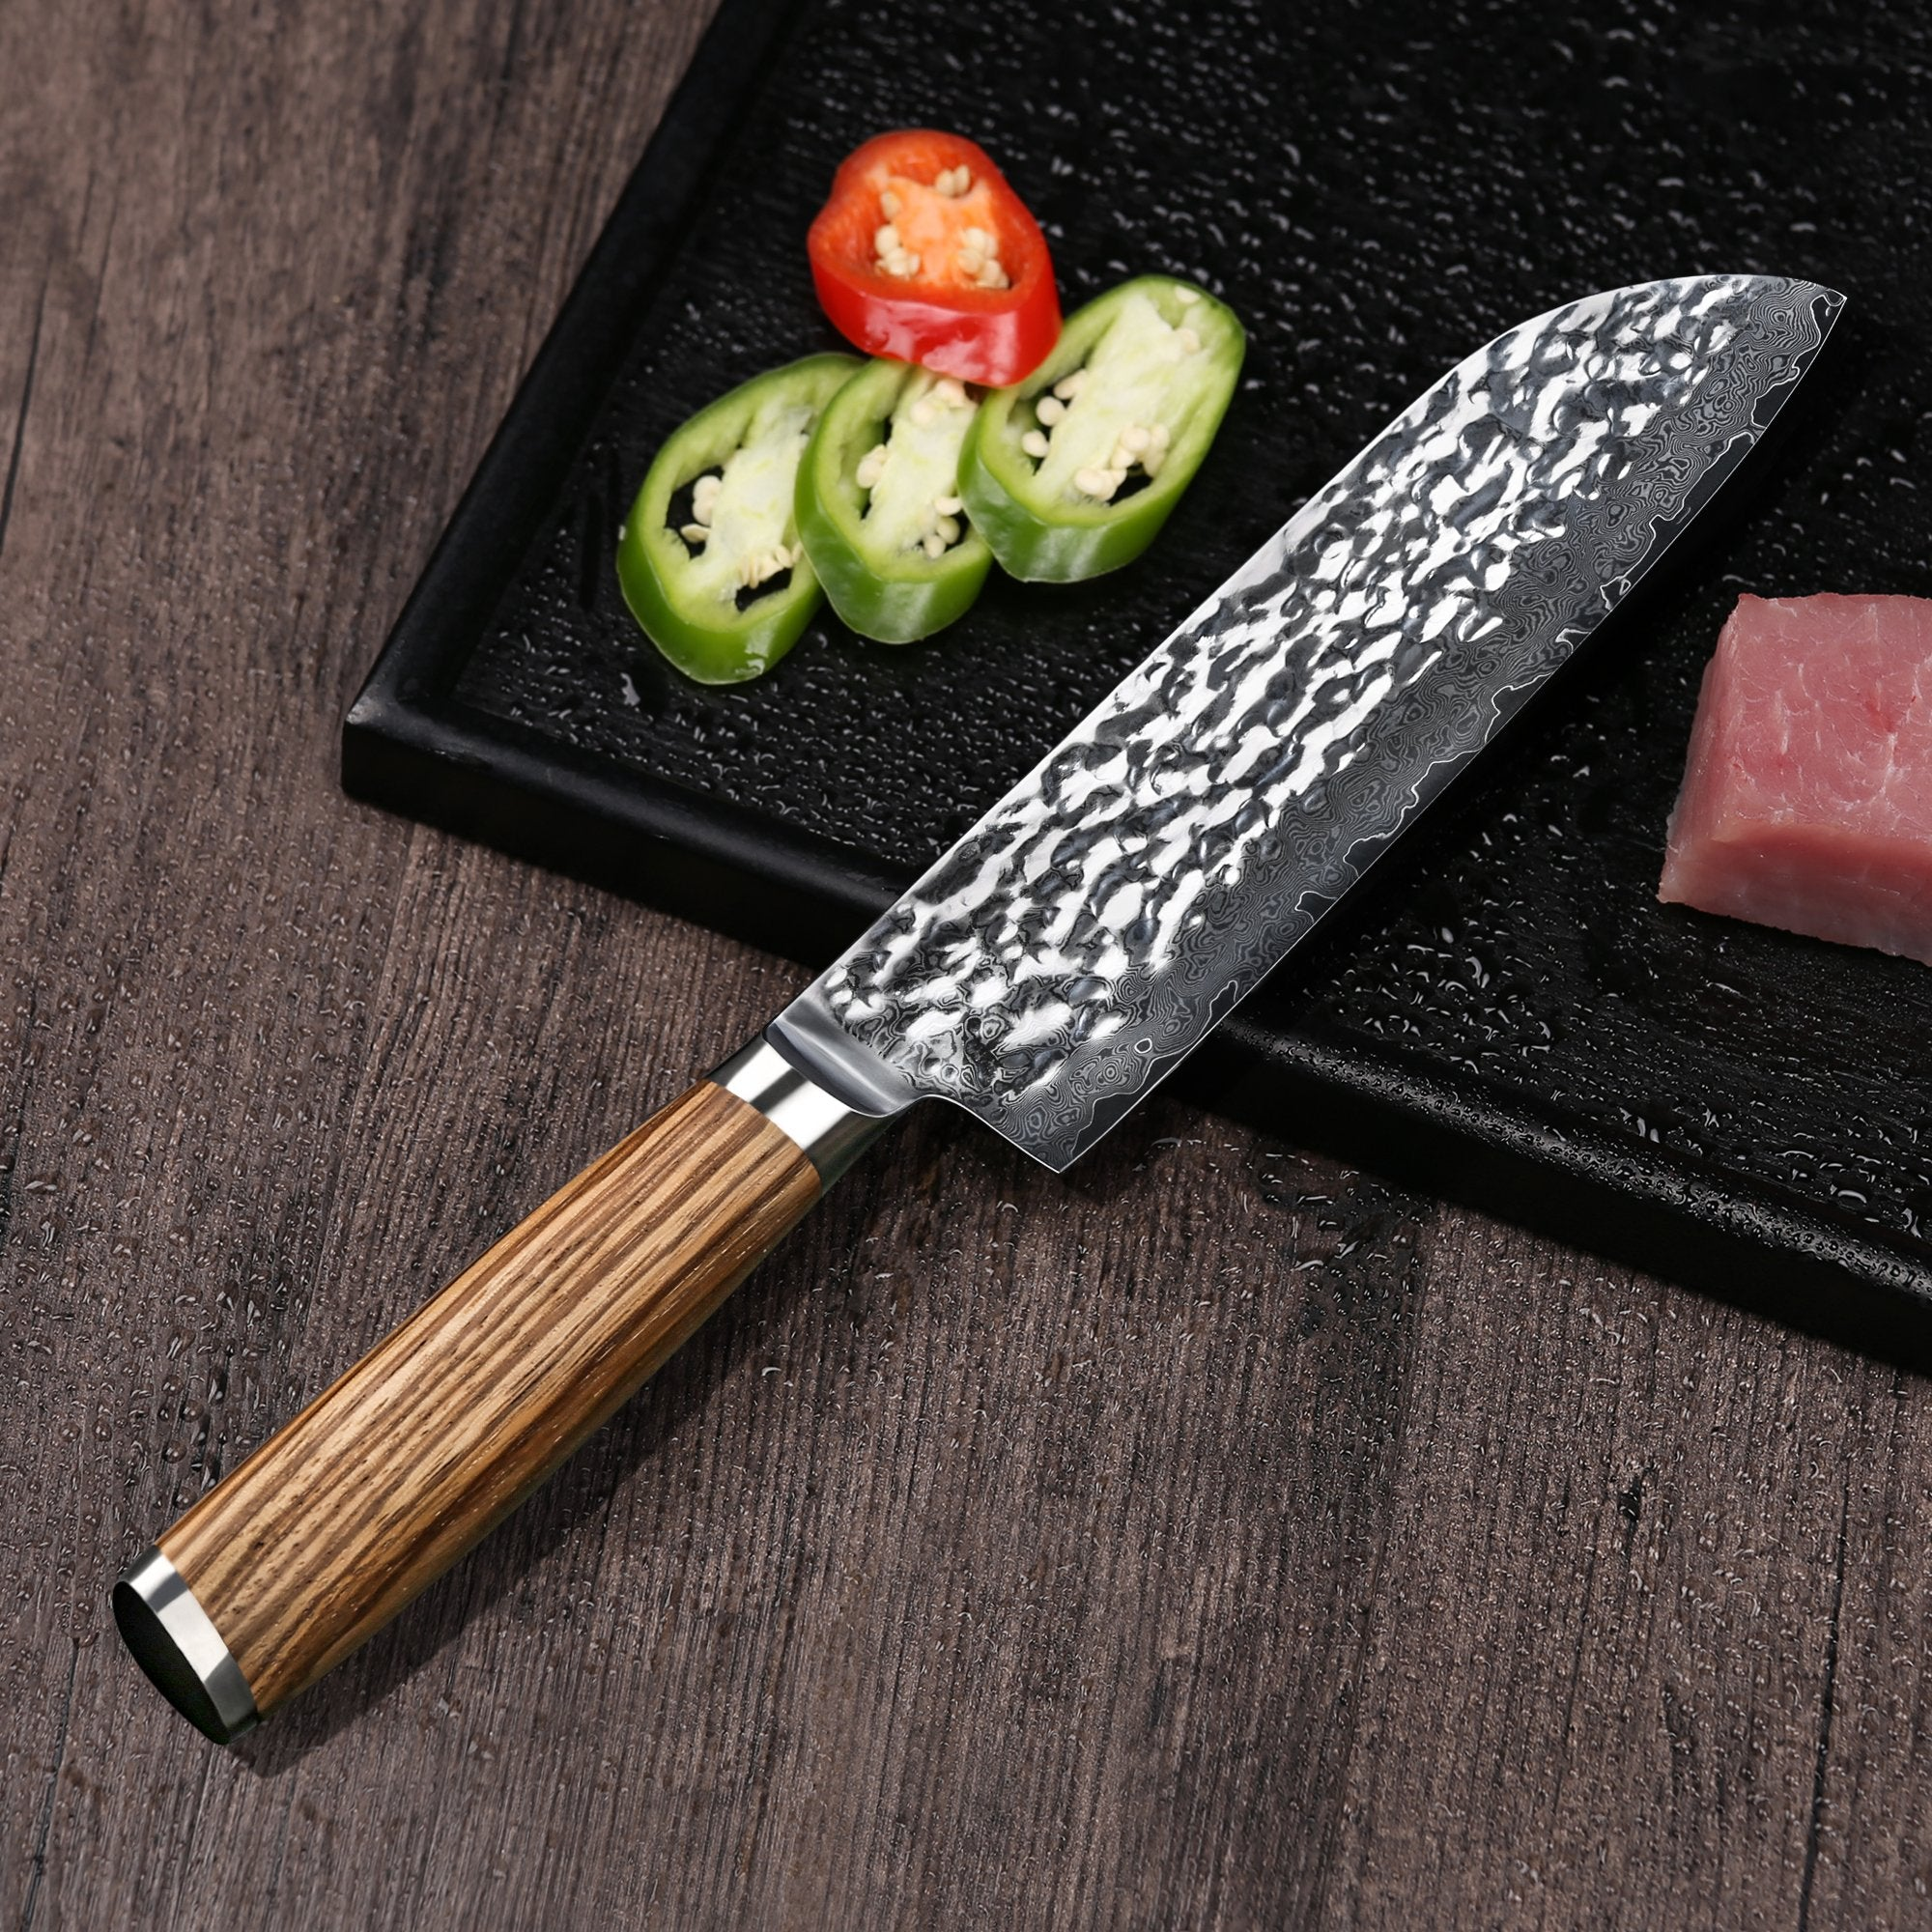 7-INCH SANTOKU CHEF'S KNIFE QUALITY DAMASCUS VG10 STEEL CHEF KNIFE